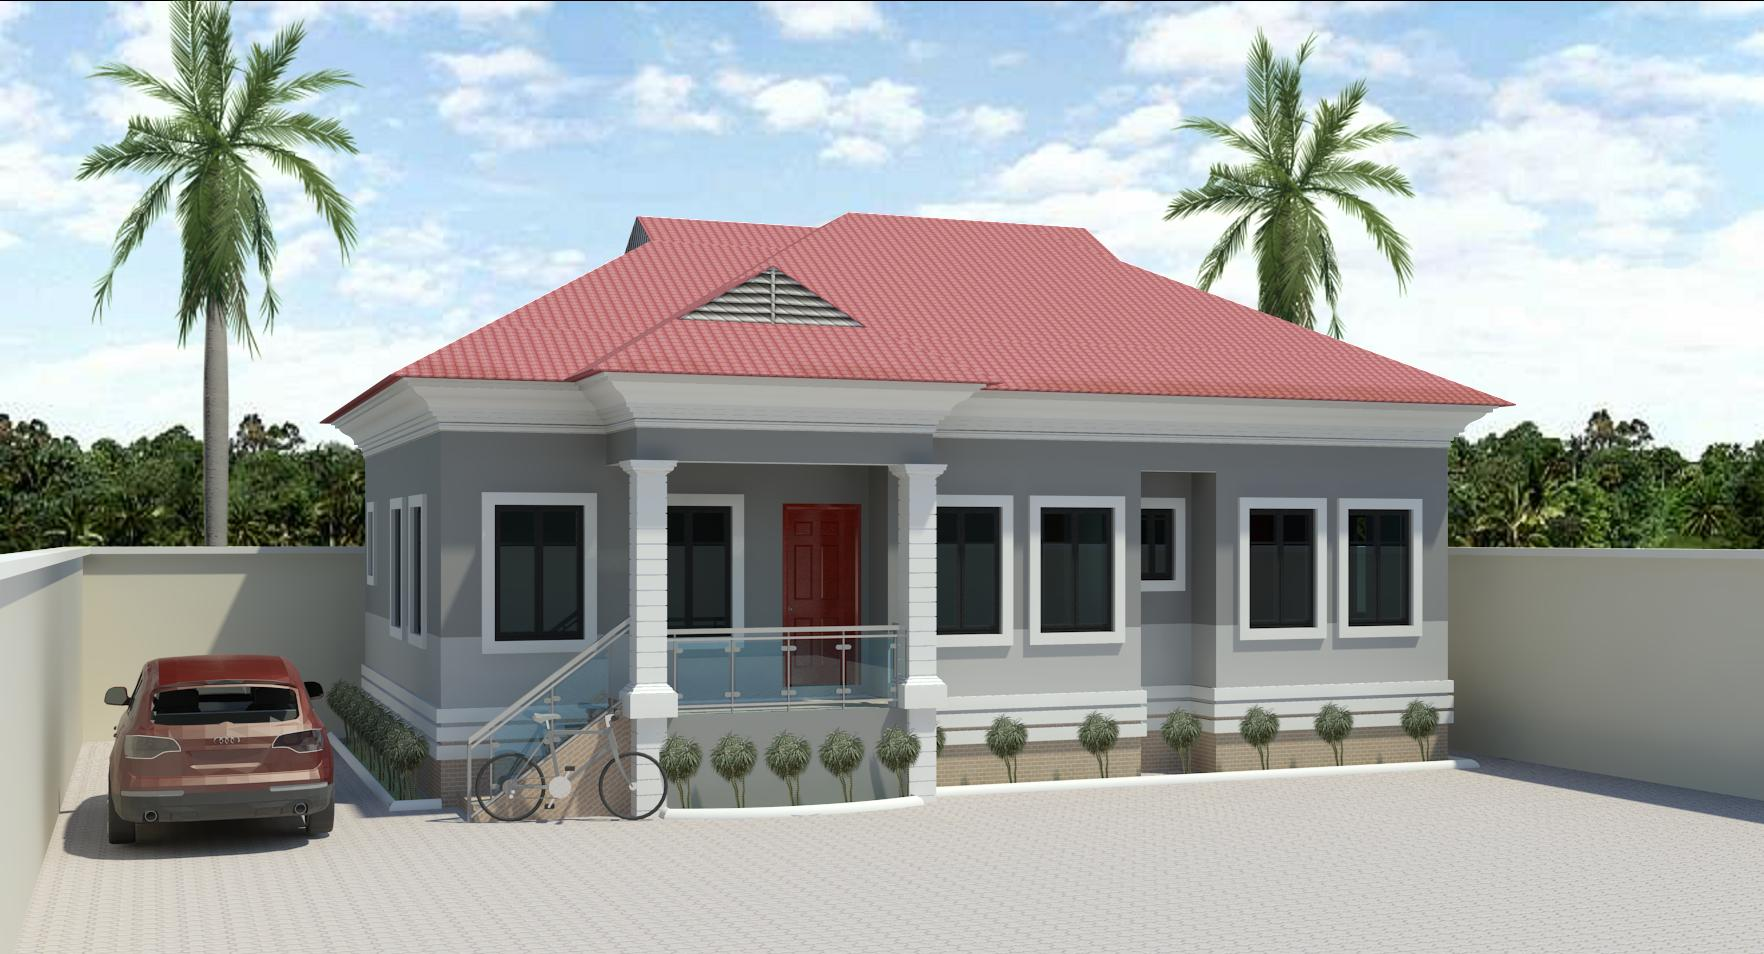 3bedroom bungalow designs in nigeria joy studio design for Nigeria house plans